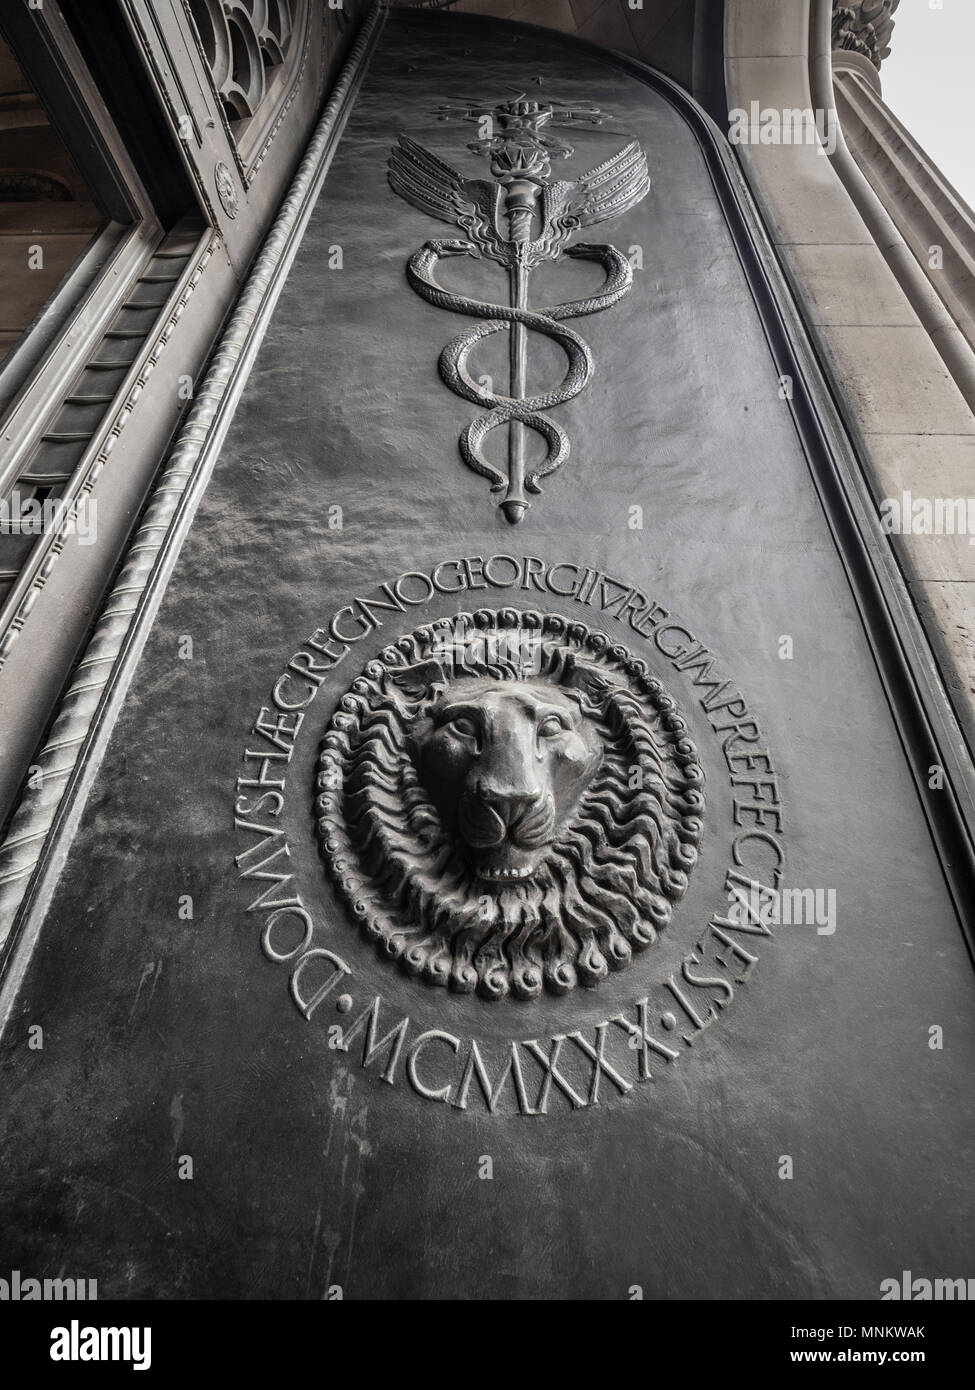 Lions head on front door of Bank of England, London, UK. - Stock Image